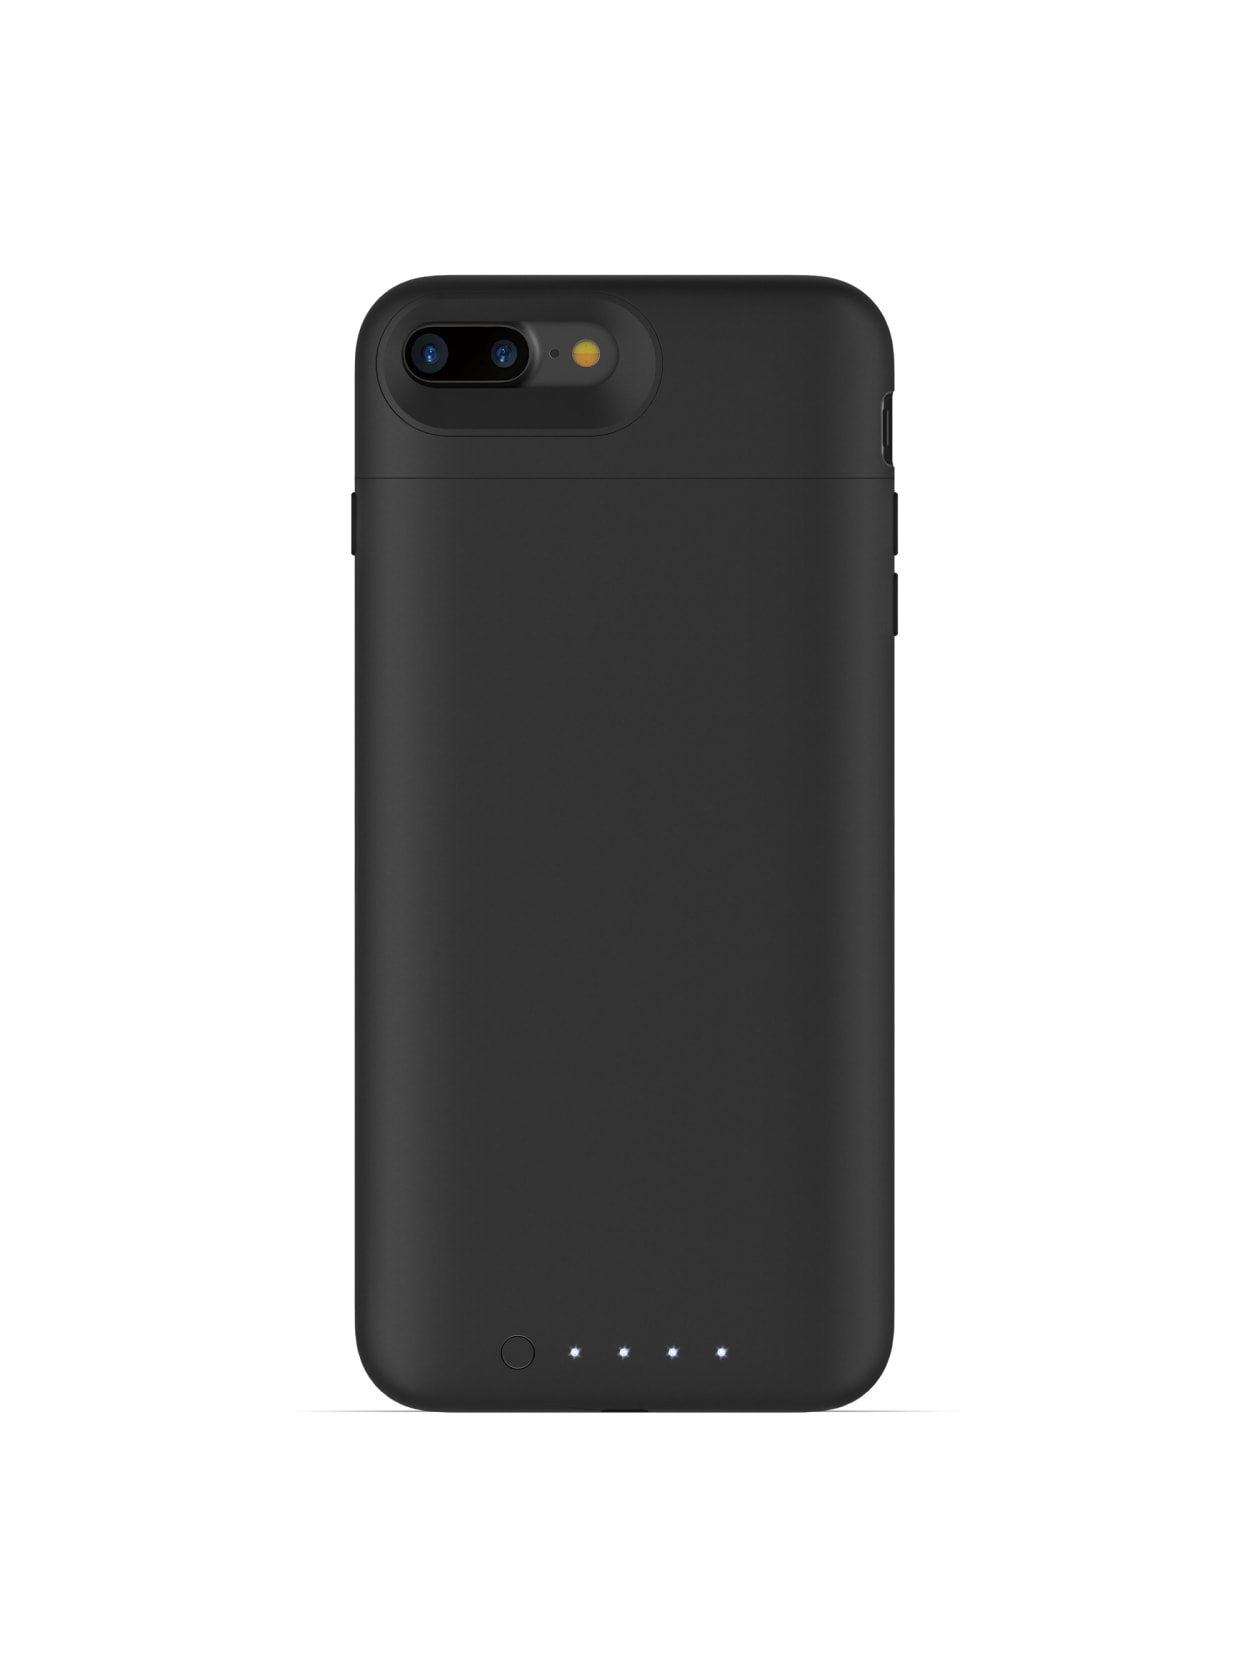 Mophie Juice Pack Air Charging Case For Apple Iphone 7 Plus8 Plus Black Office Depot Slim, protective juice pack battery cases from mophie help you maintain a full charge so you always have power when and. mophie